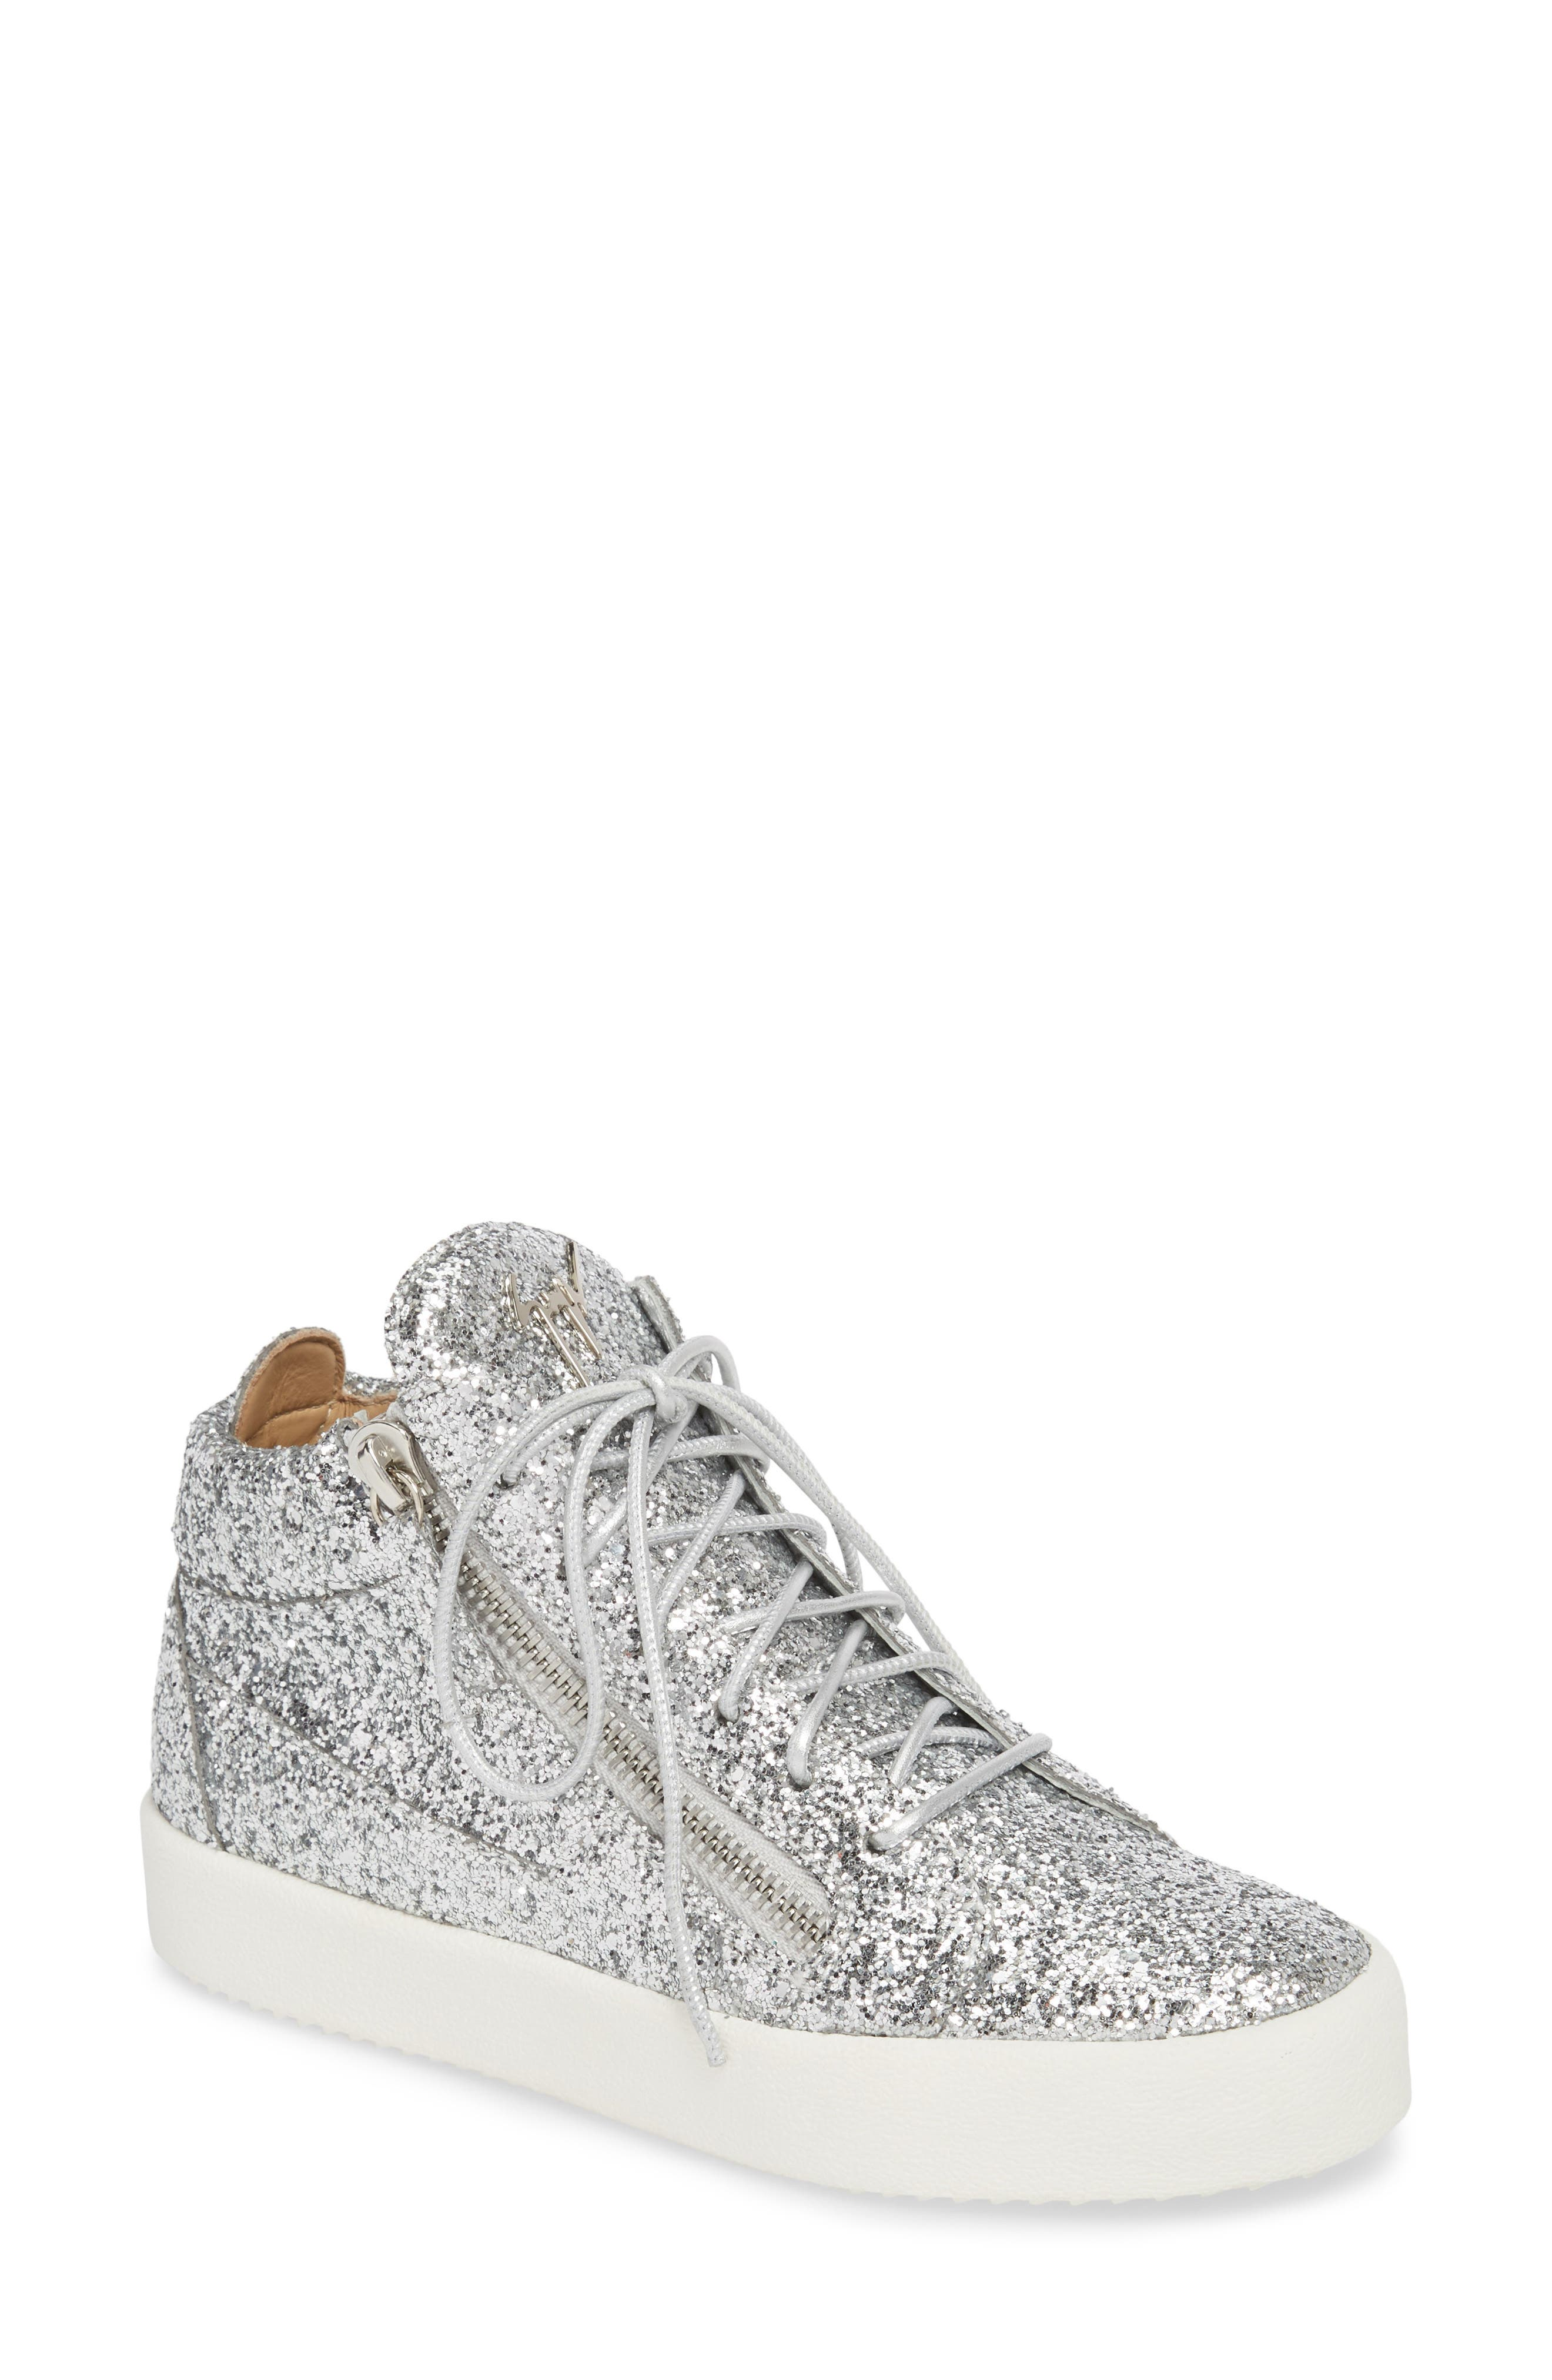 May London High Top Sneaker,                         Main,                         color, SILVER